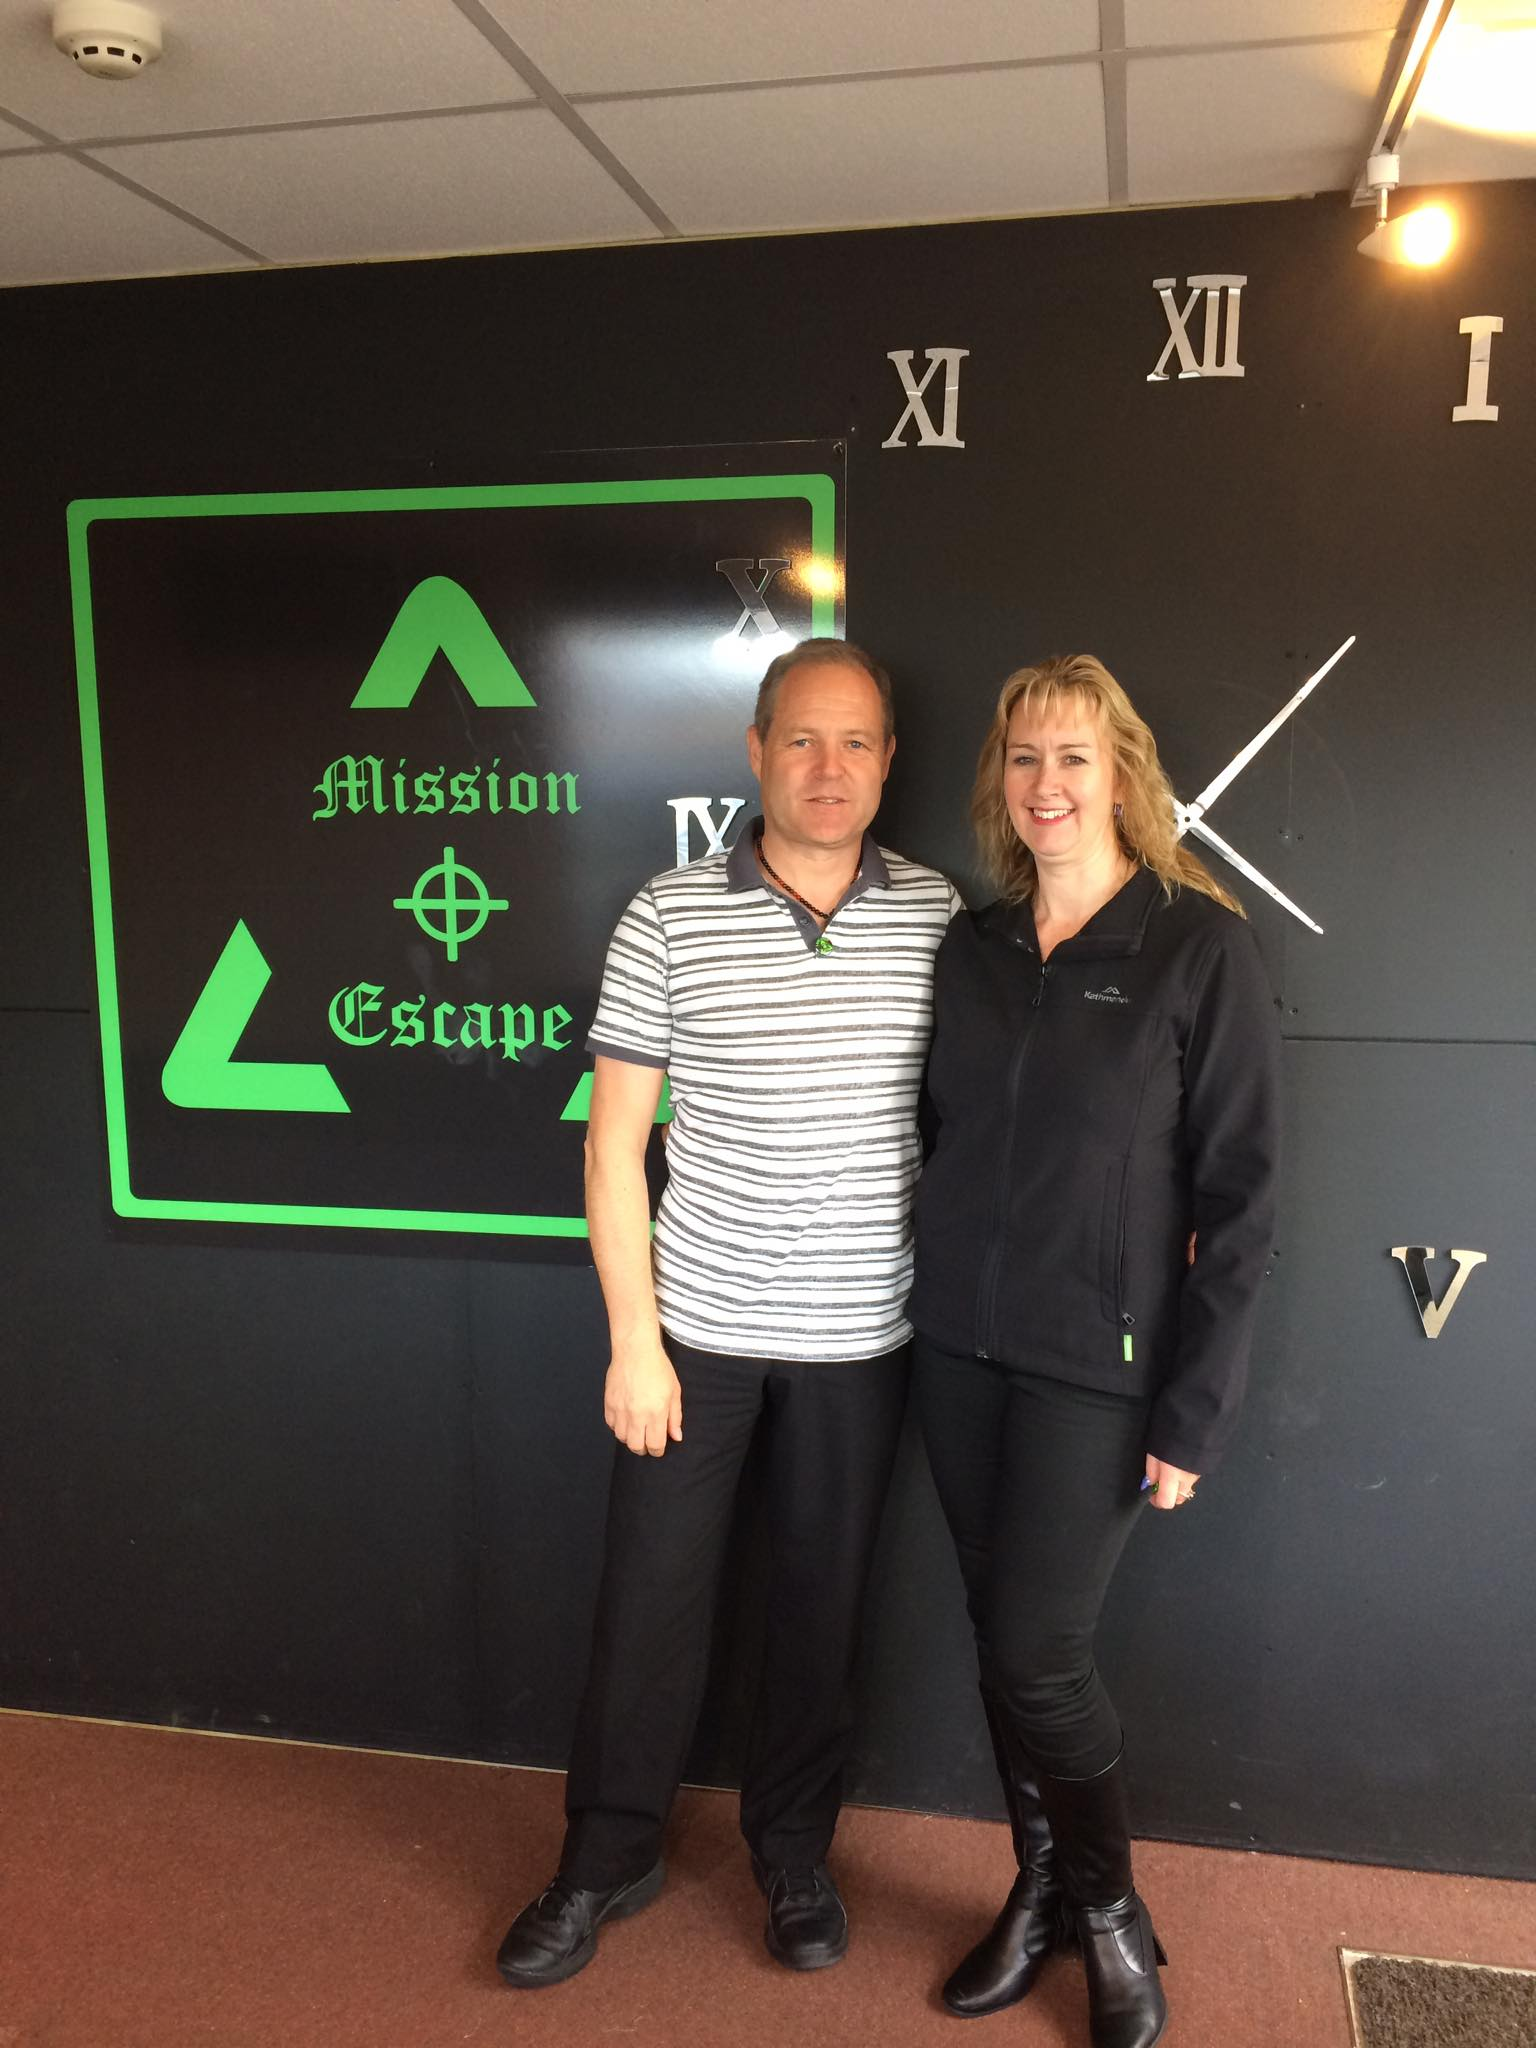 Julia and Darren at Mission Escape in Plymouth